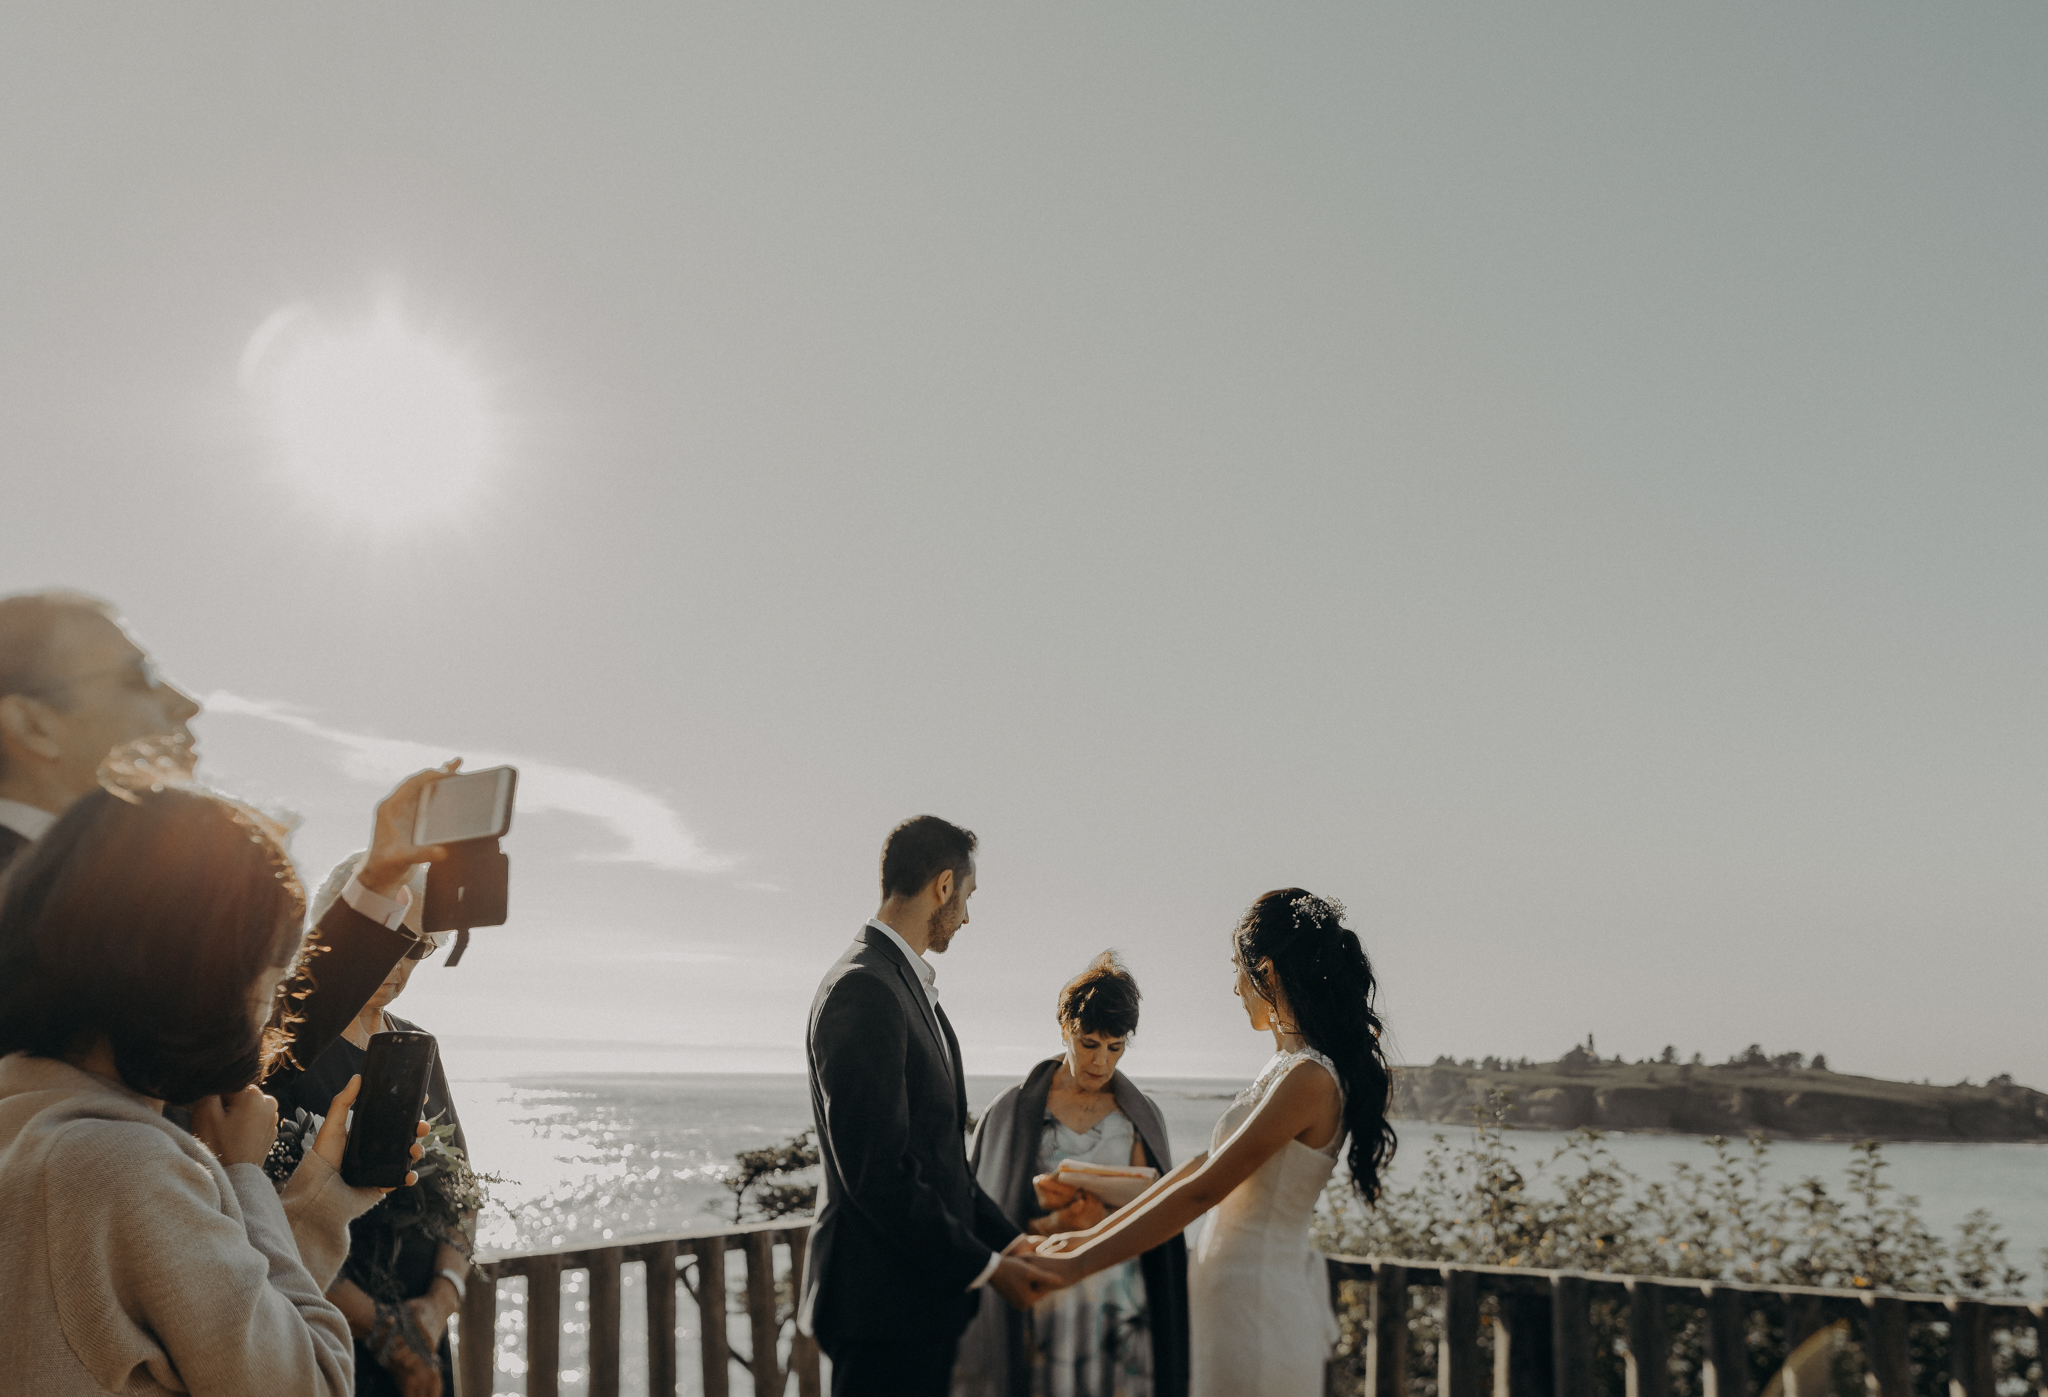 Isaiah + Taylor Photography - Cape Flattery Elopement, Olympia National Forest Wedding Photographer-051.jpg